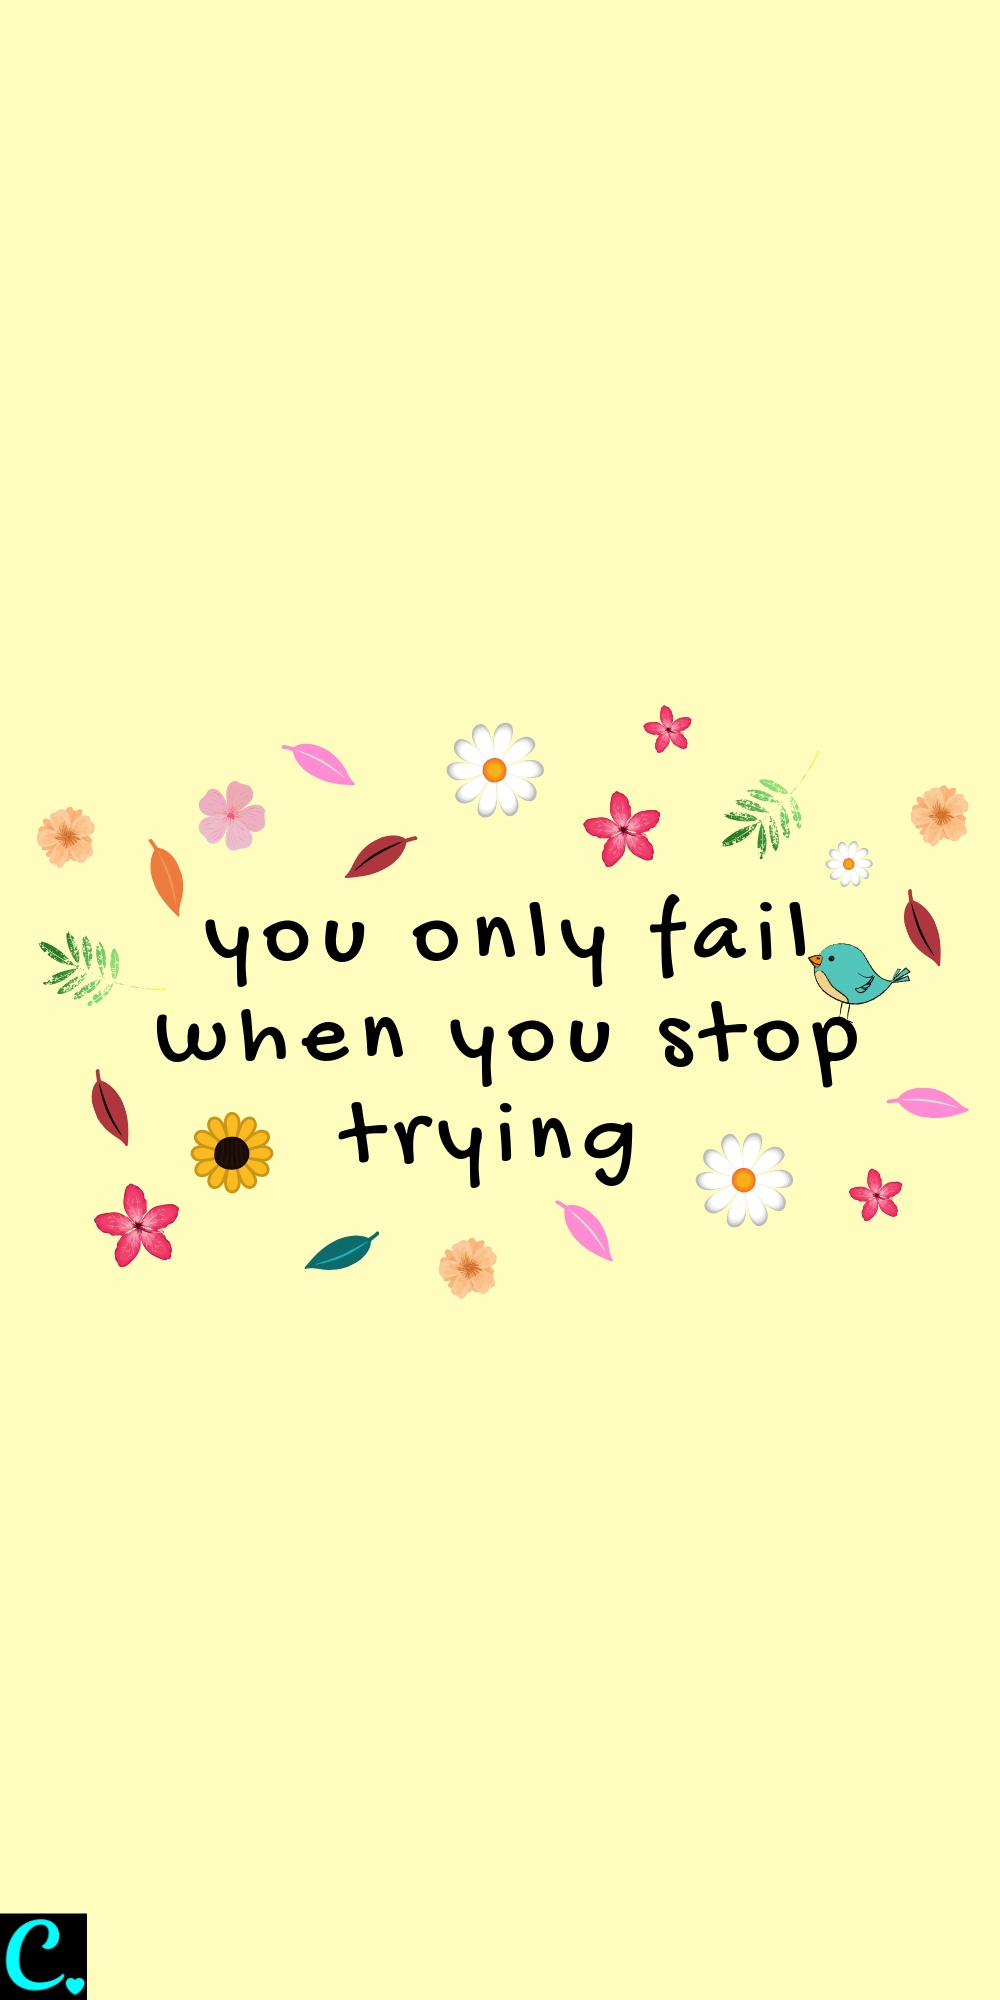 You only fail when you stop trying #motivationalquote #bravequotes #successquotes #successmindset